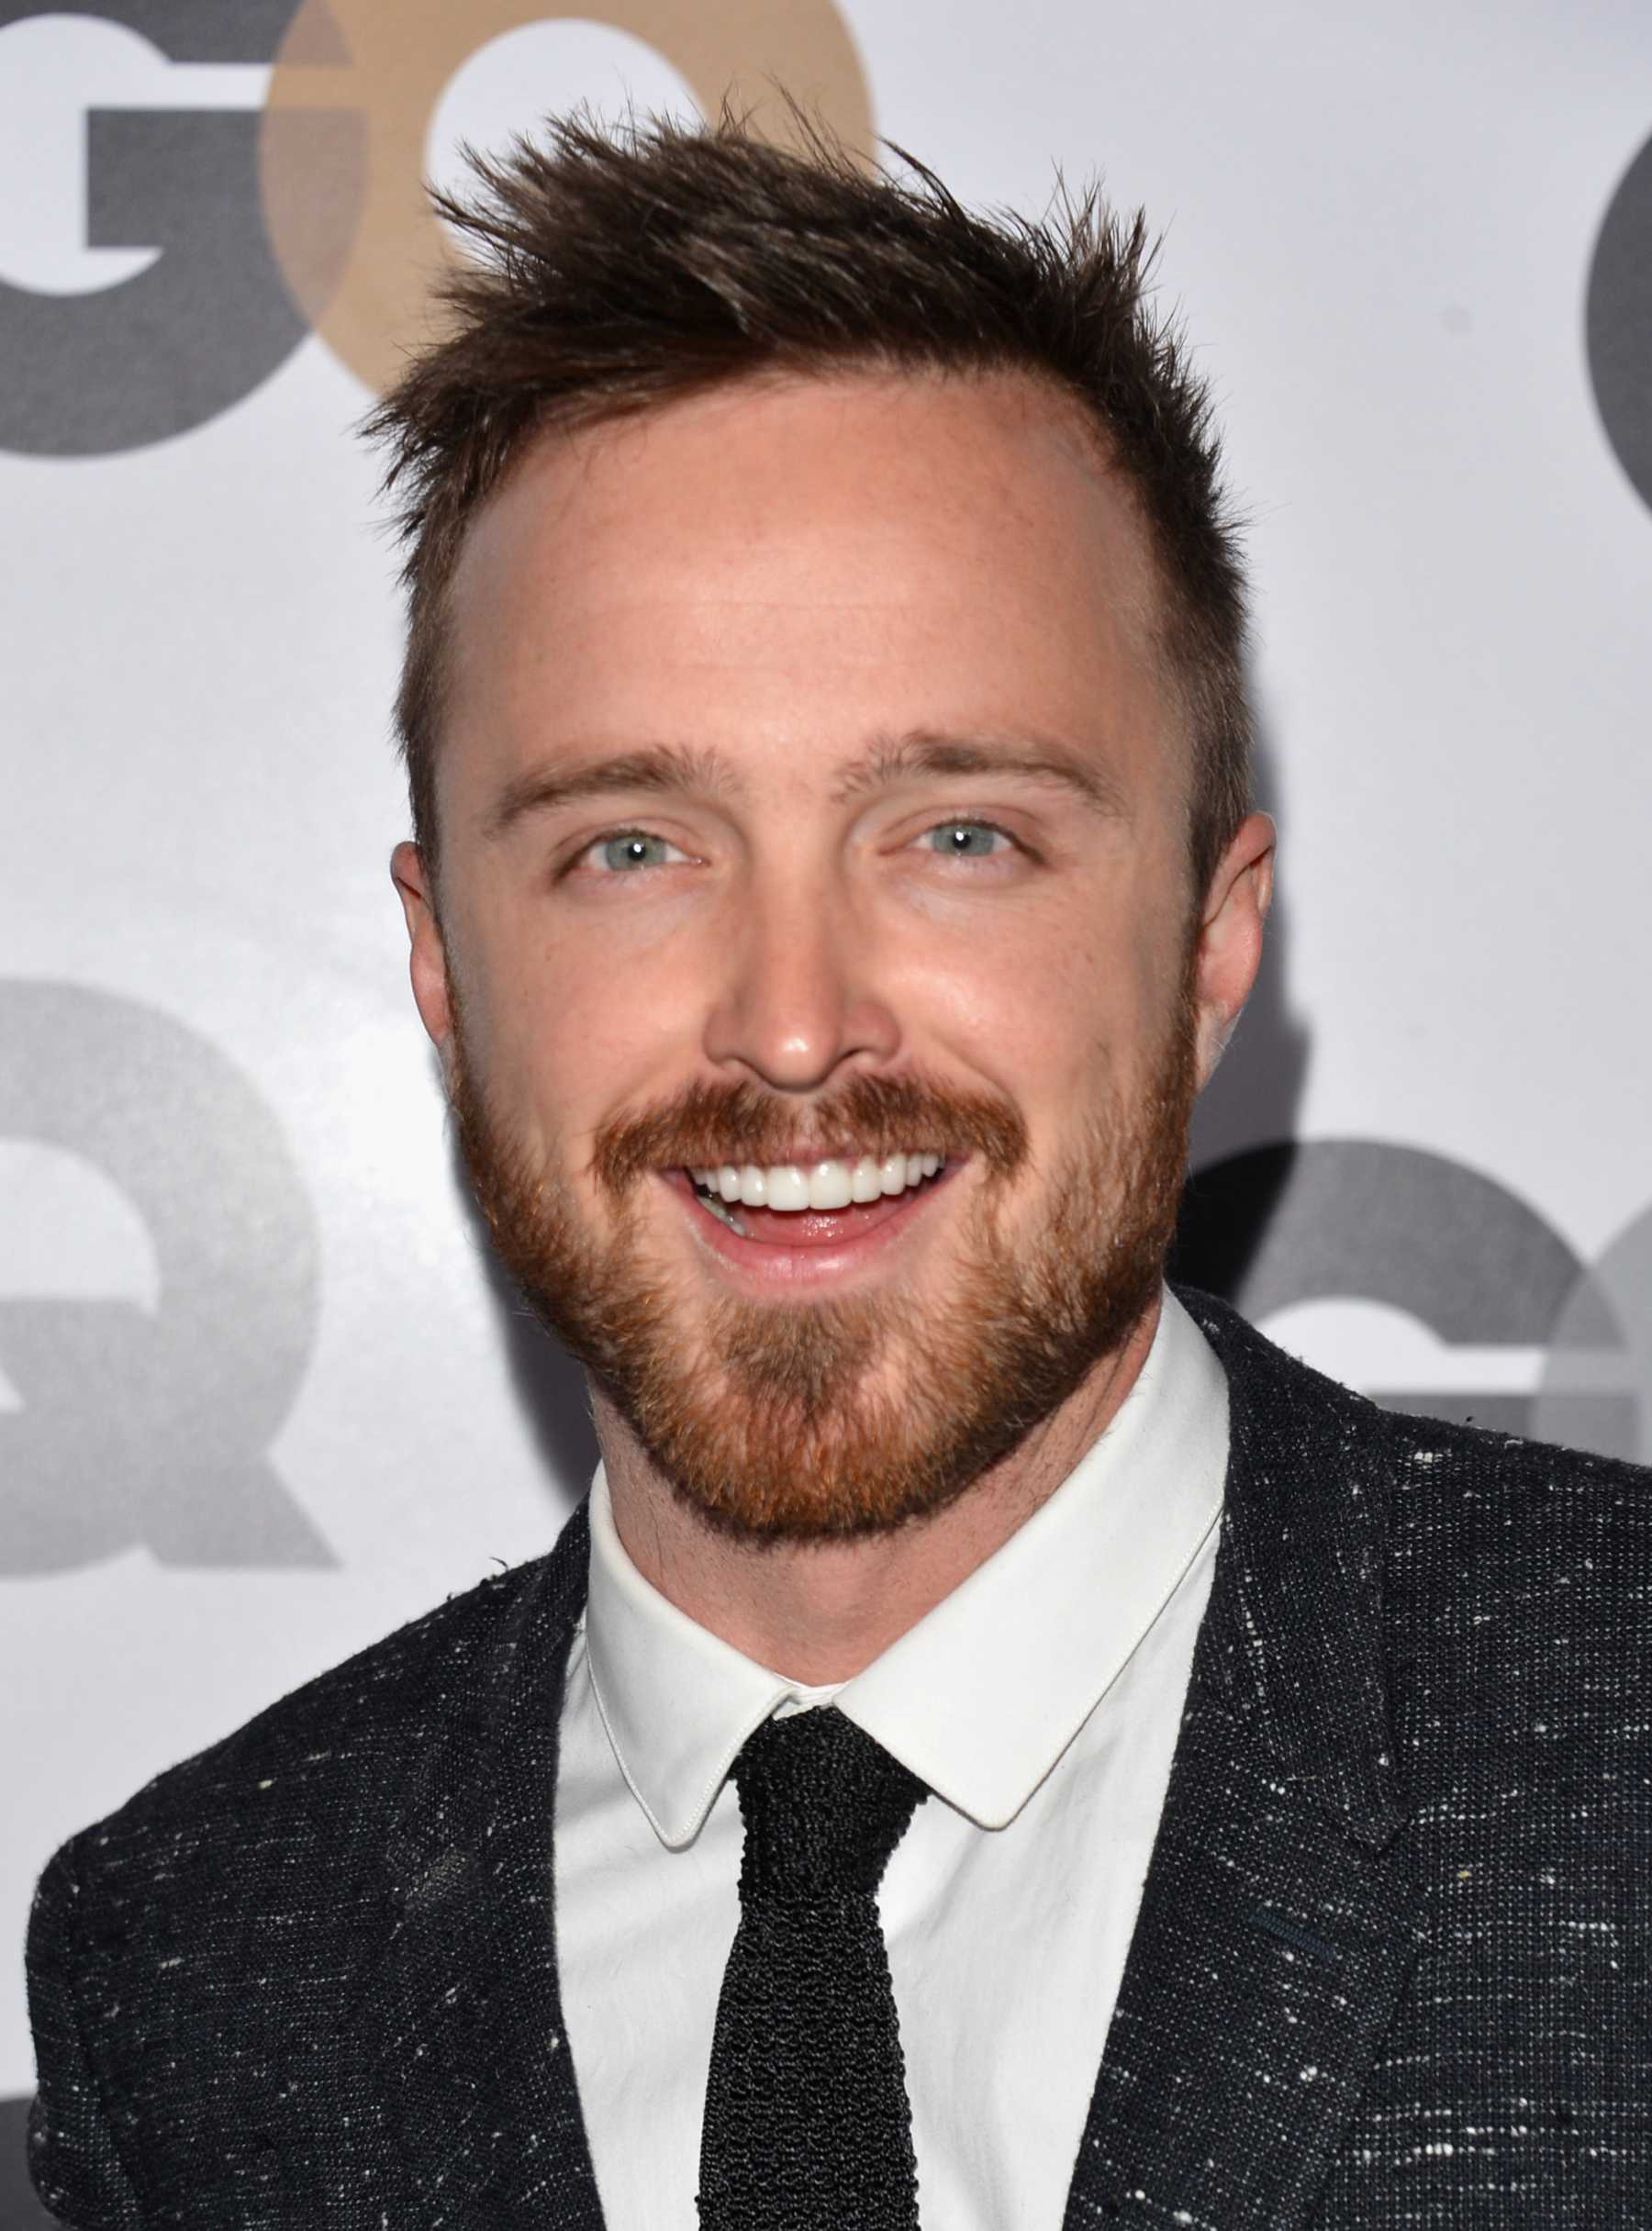 Aaron Paul Has A Need For Speed In Latest Film